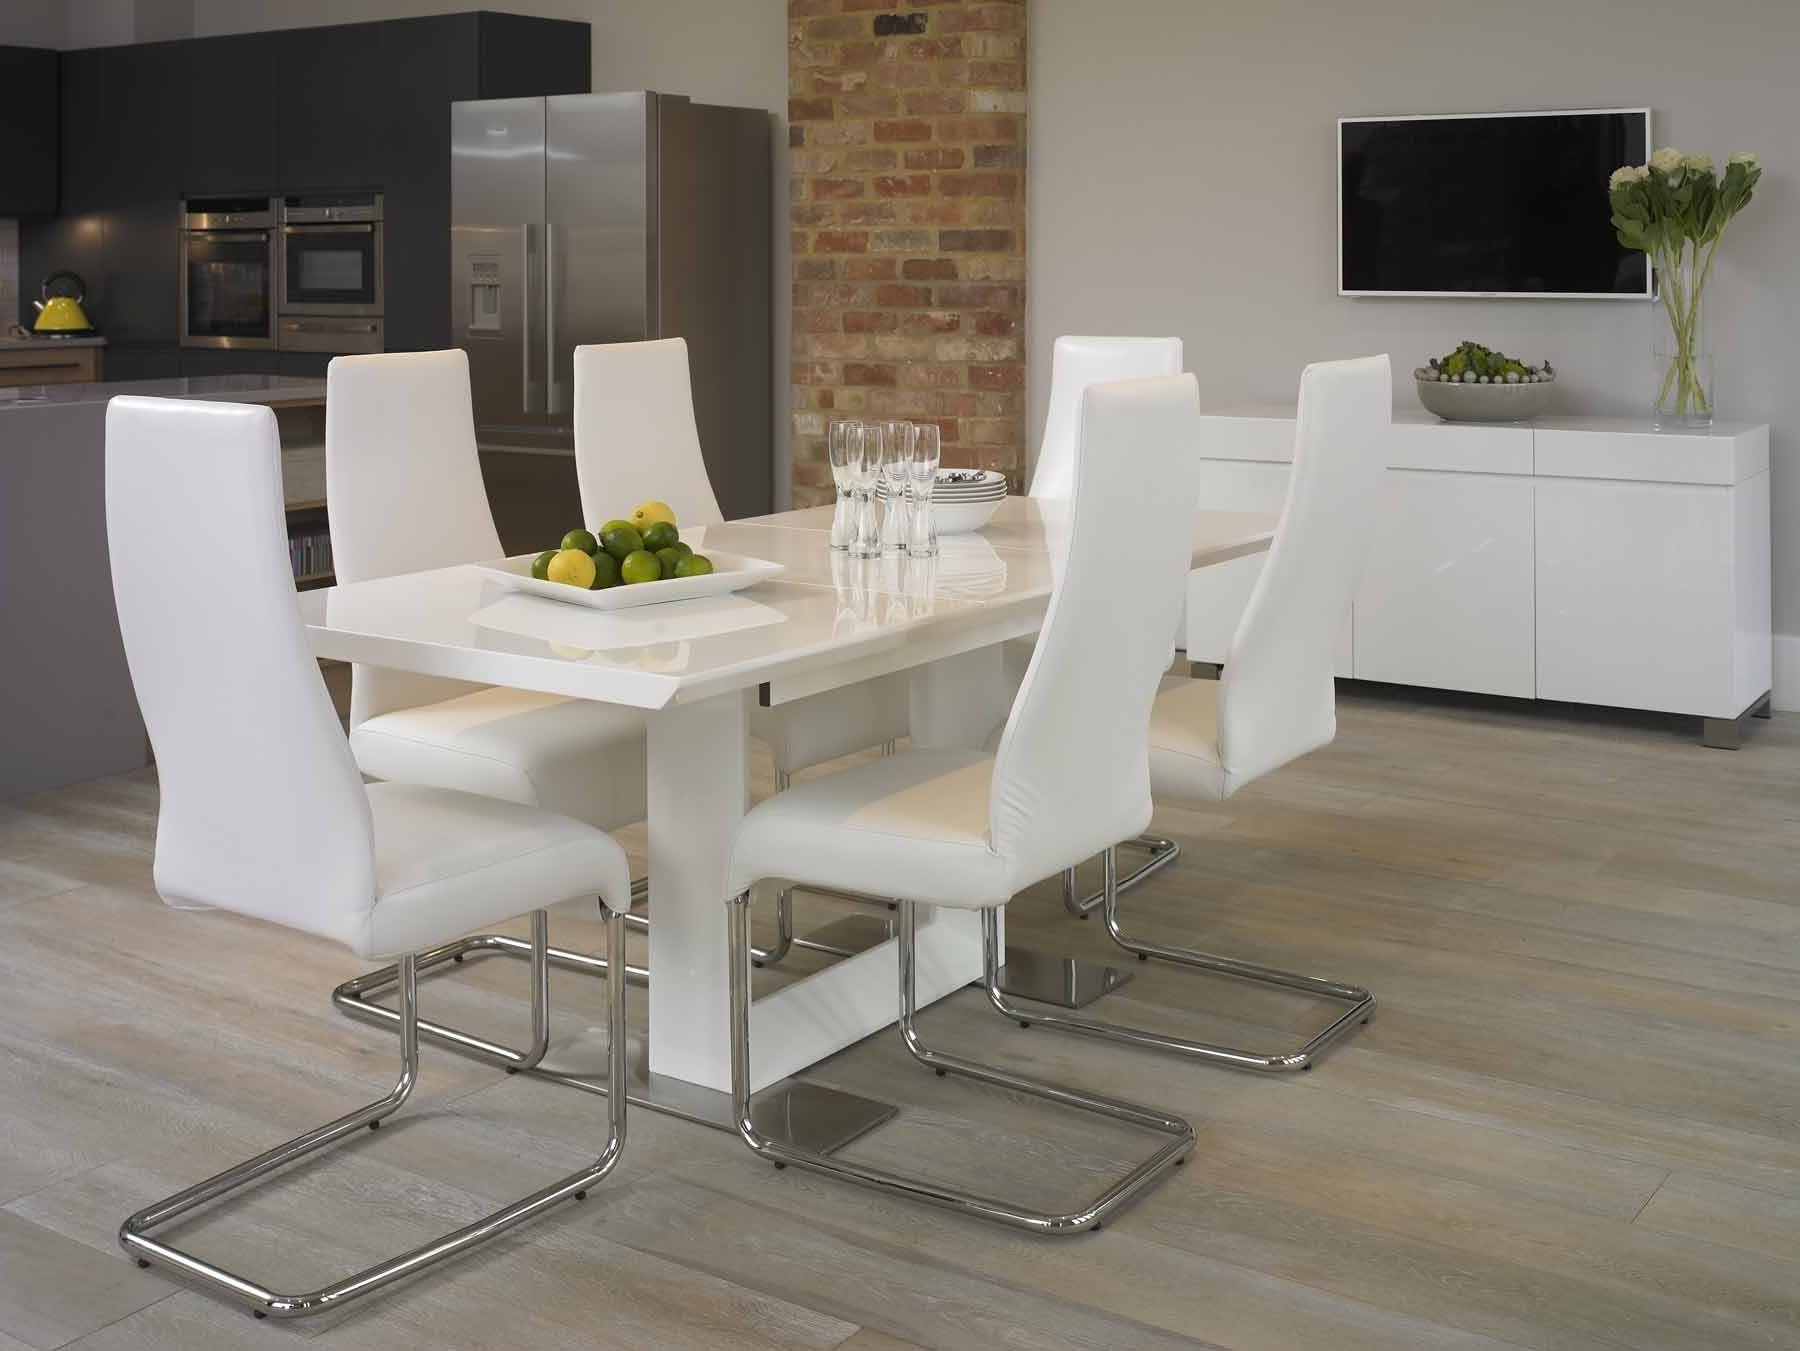 Widely Used White Gloss Dining Table Harlequin White High Gloss X (View 7 of 25)